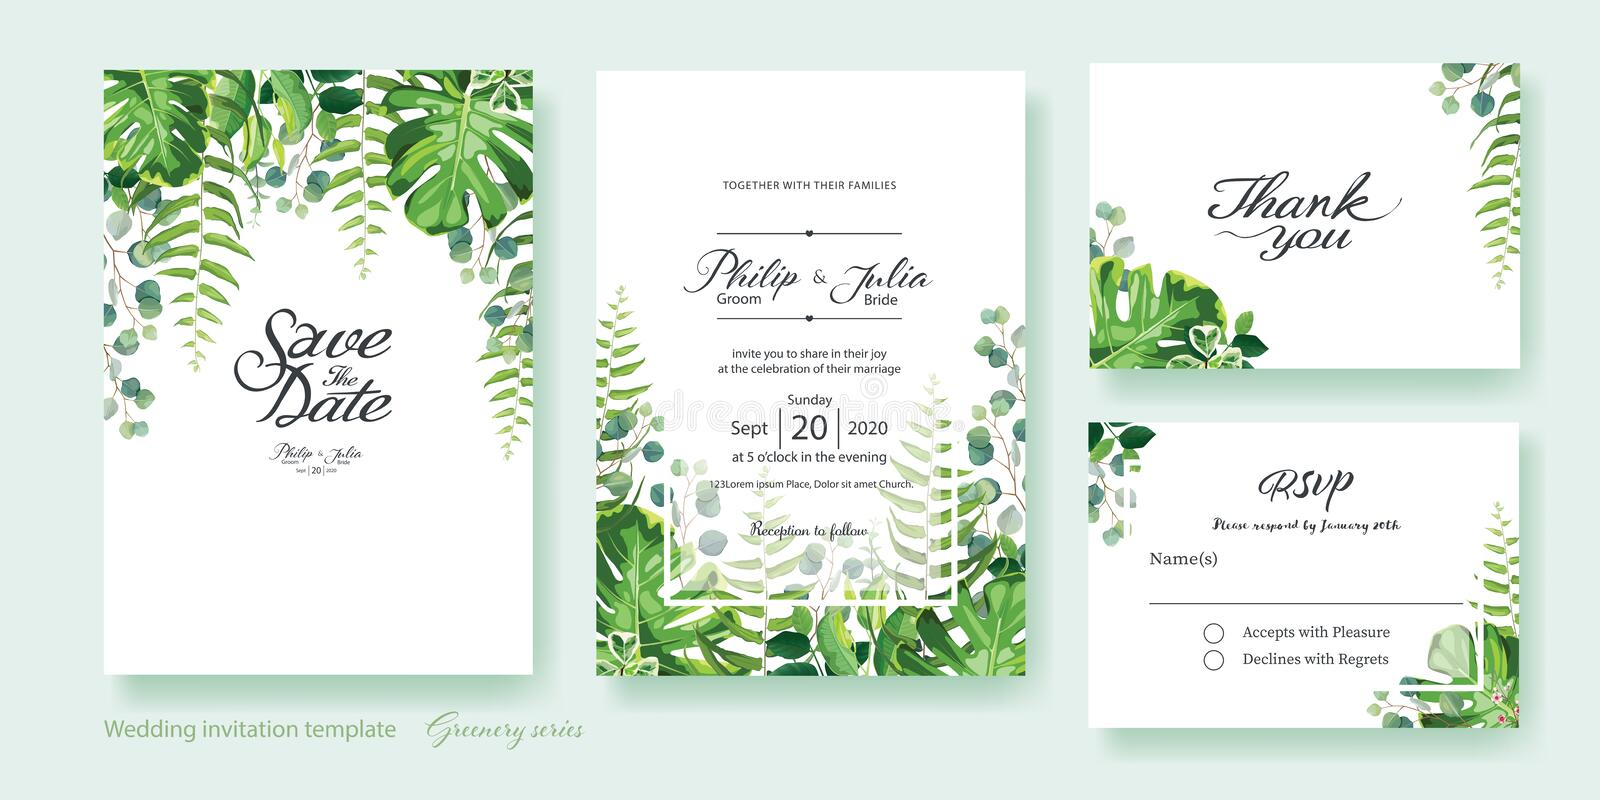 Greenery wedding Invitation, save the date, thank you, rsvp card Design template. Vector. Summer leaf, silver dollar eucalyptus,. Olive leaves, fern, Wax flower vector illustration